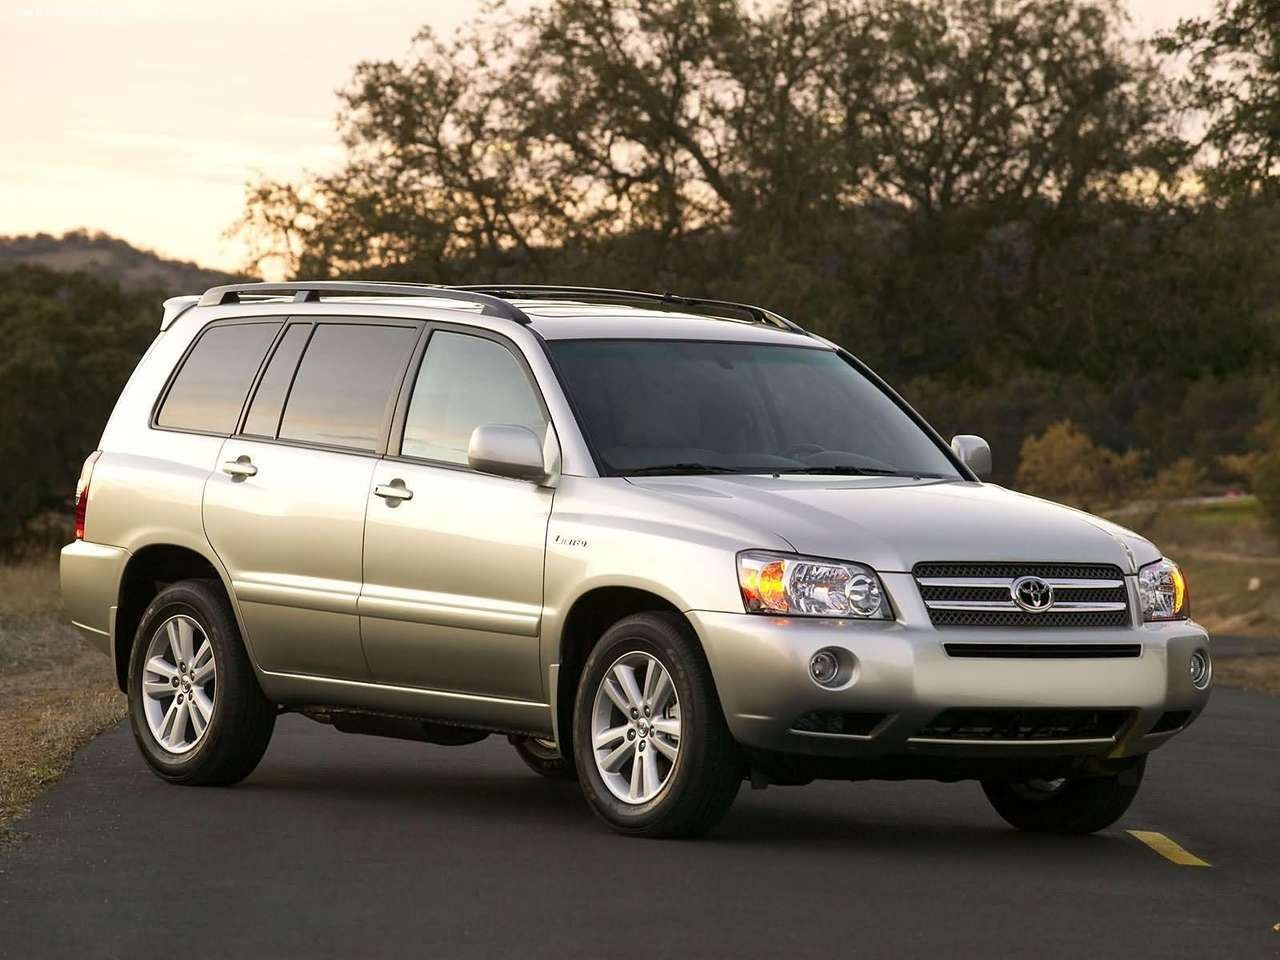 2005 Toyota Highlander Hybrid Toyota Autos Spain